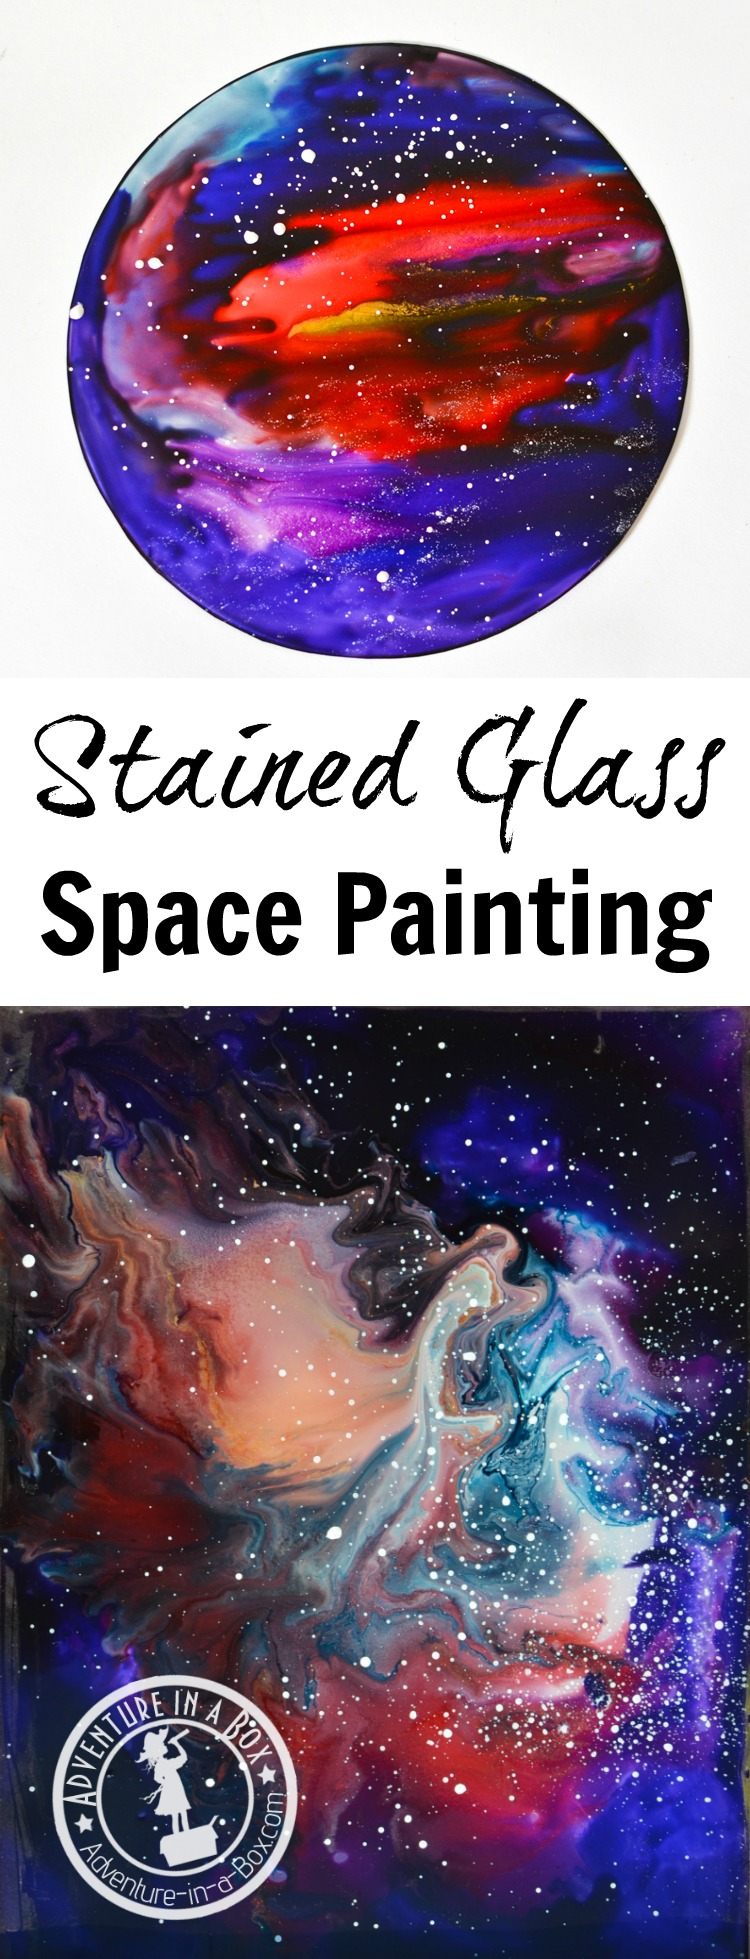 imitation-stained-glass-space-painting-p